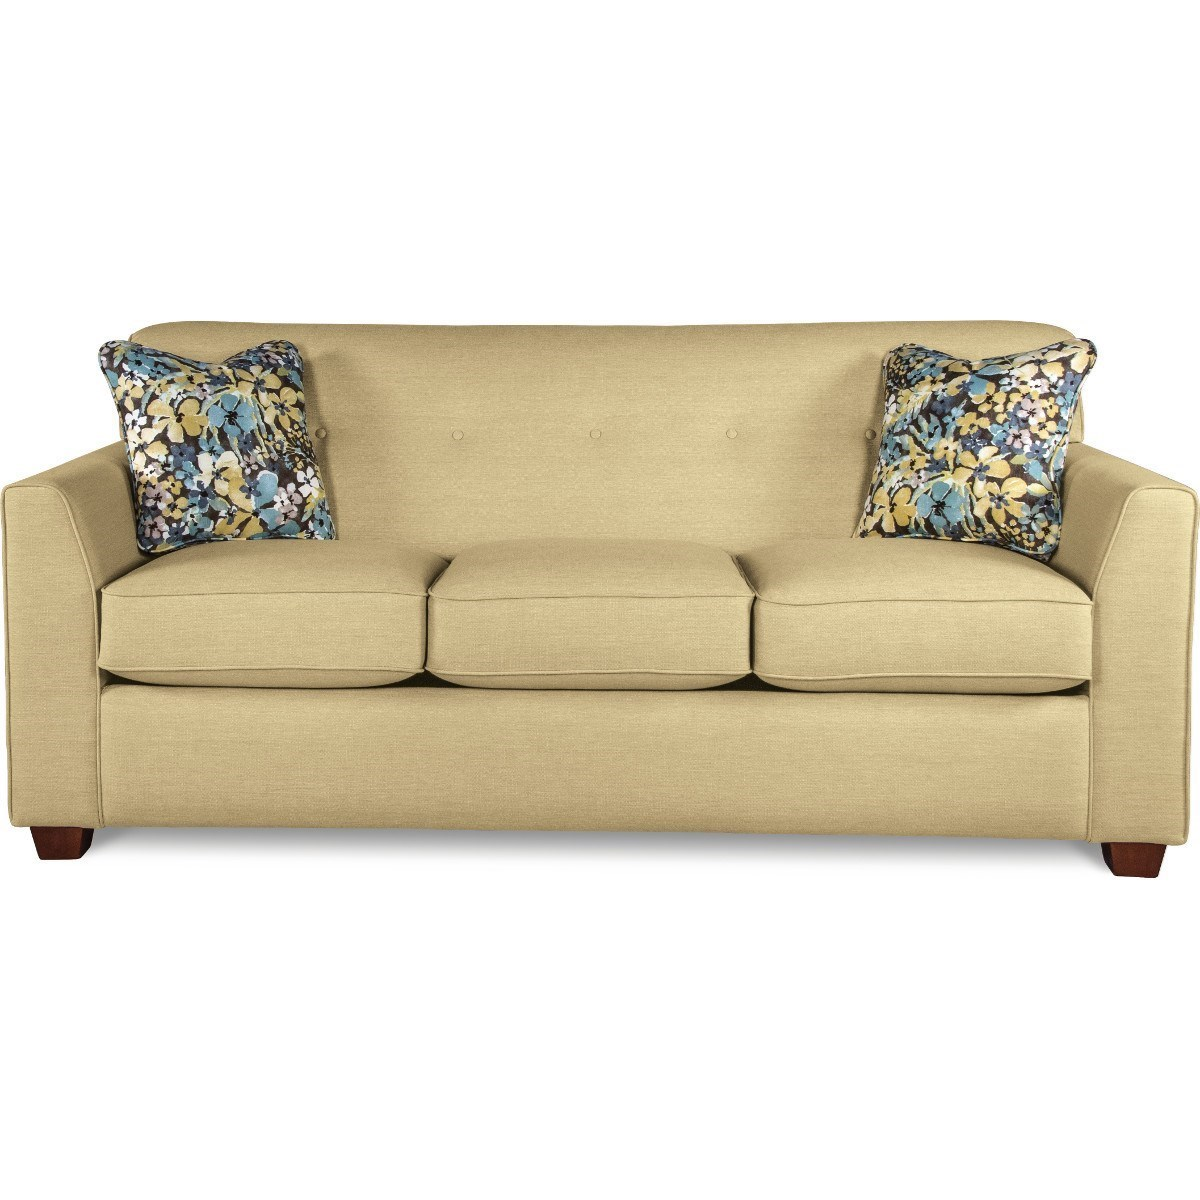 Contemporary Tufted Apartment Sleeper Sofa with Premier ComfortCore ...